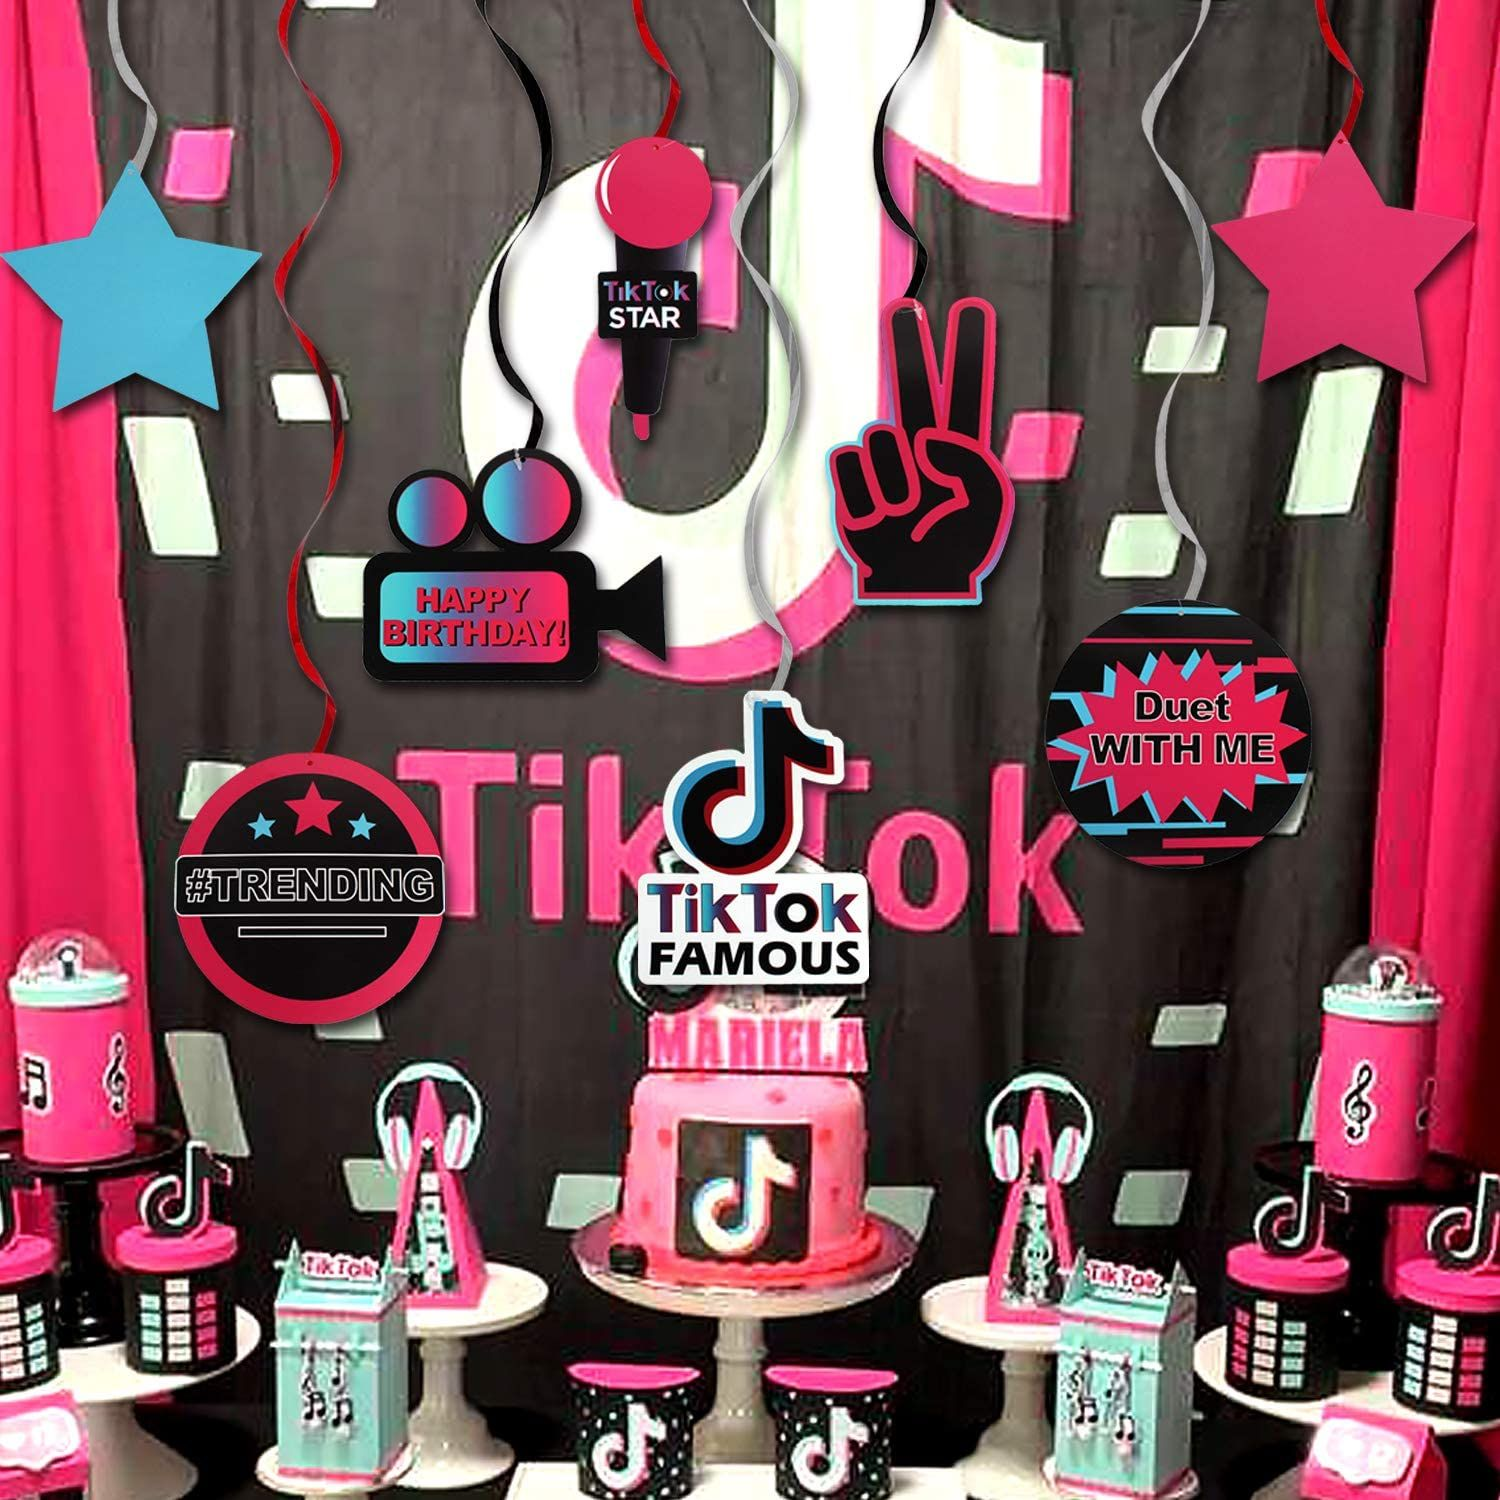 Tik Tok Party Decorations Tik Tok Party Ideas Music Birthday Party Gift Deco Sign In 2021 Music Birthday Party Happy Birthday Parties Birthday Party Gift